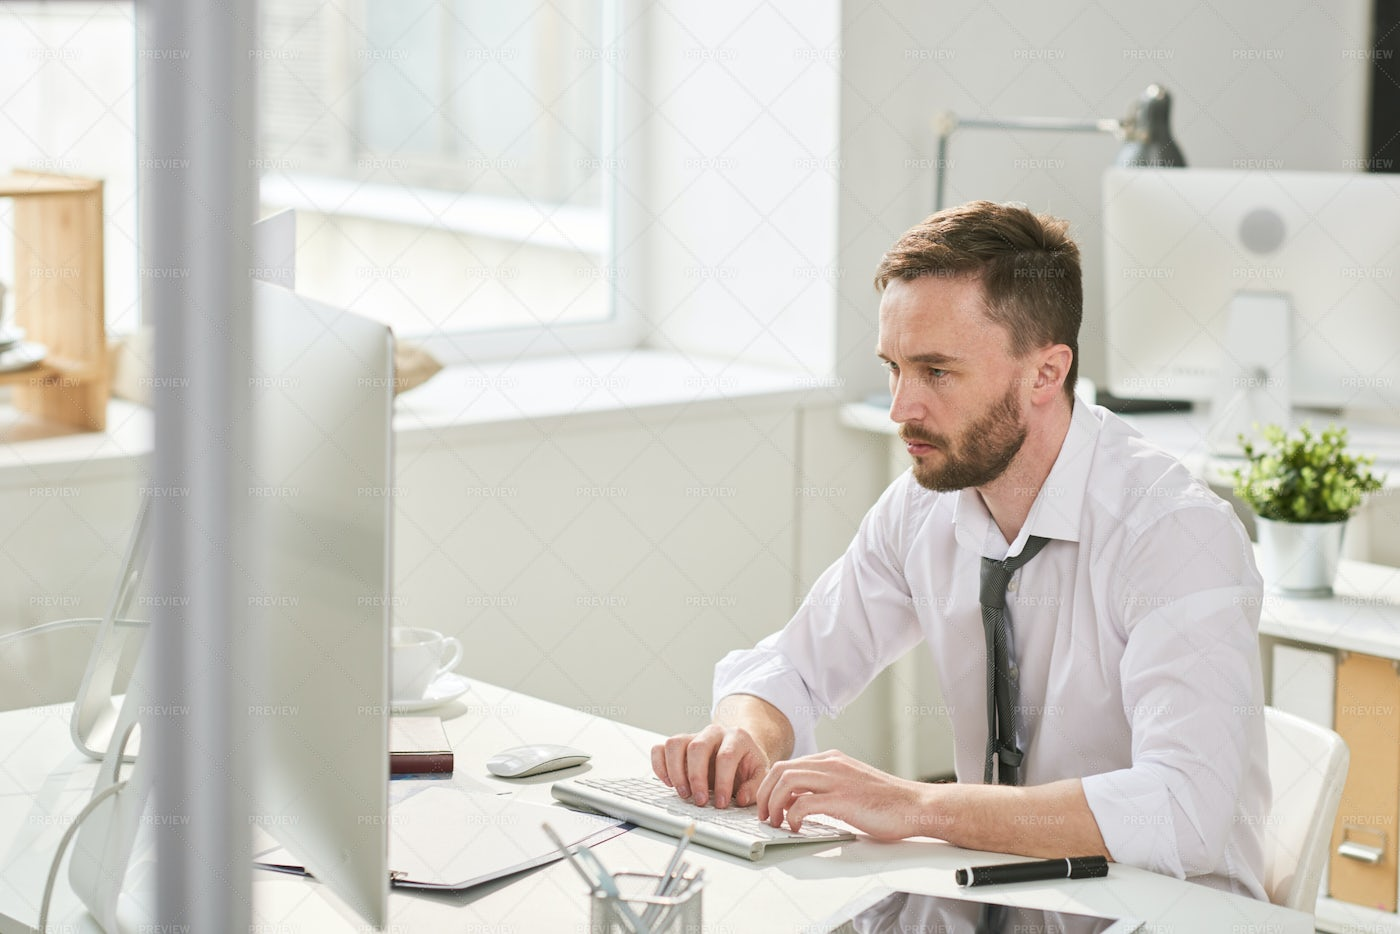 Busy Man Working Hard In Office: Stock Photos